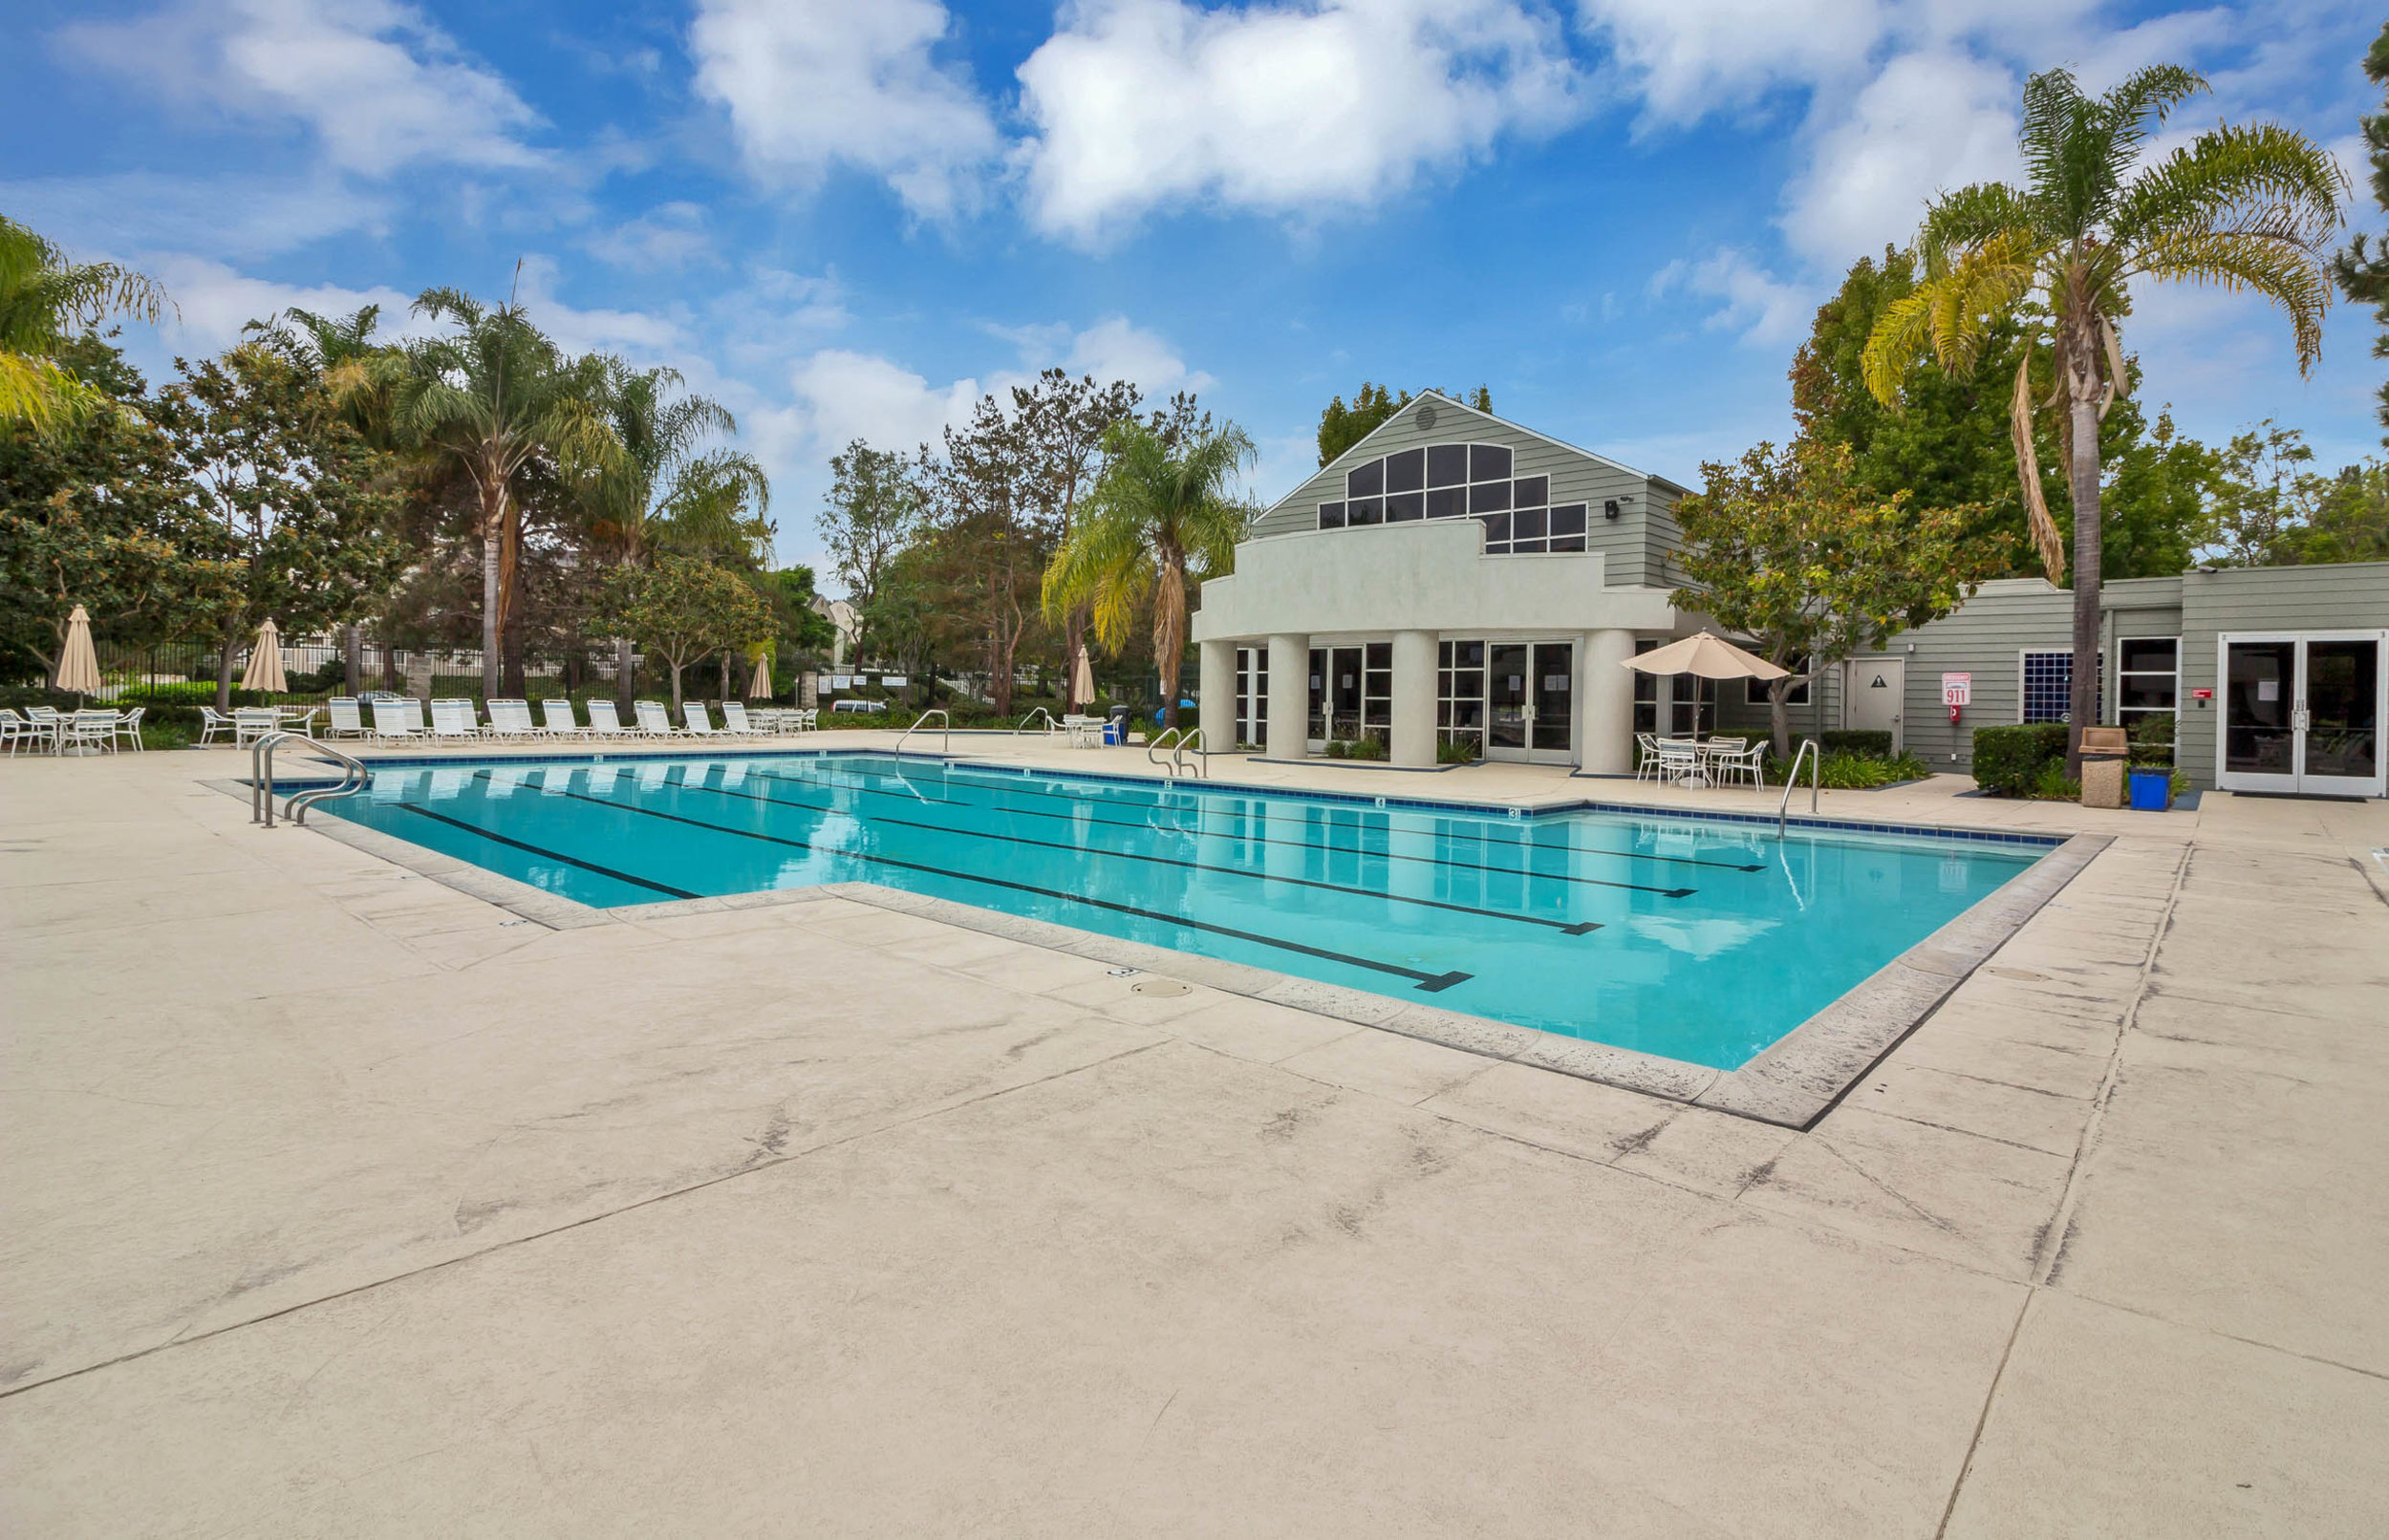 025 Pool 18 Rainwood Aliso Viejo Orange County For Sale Lease The Malibu Life Team Luxury Real Estate.jpg